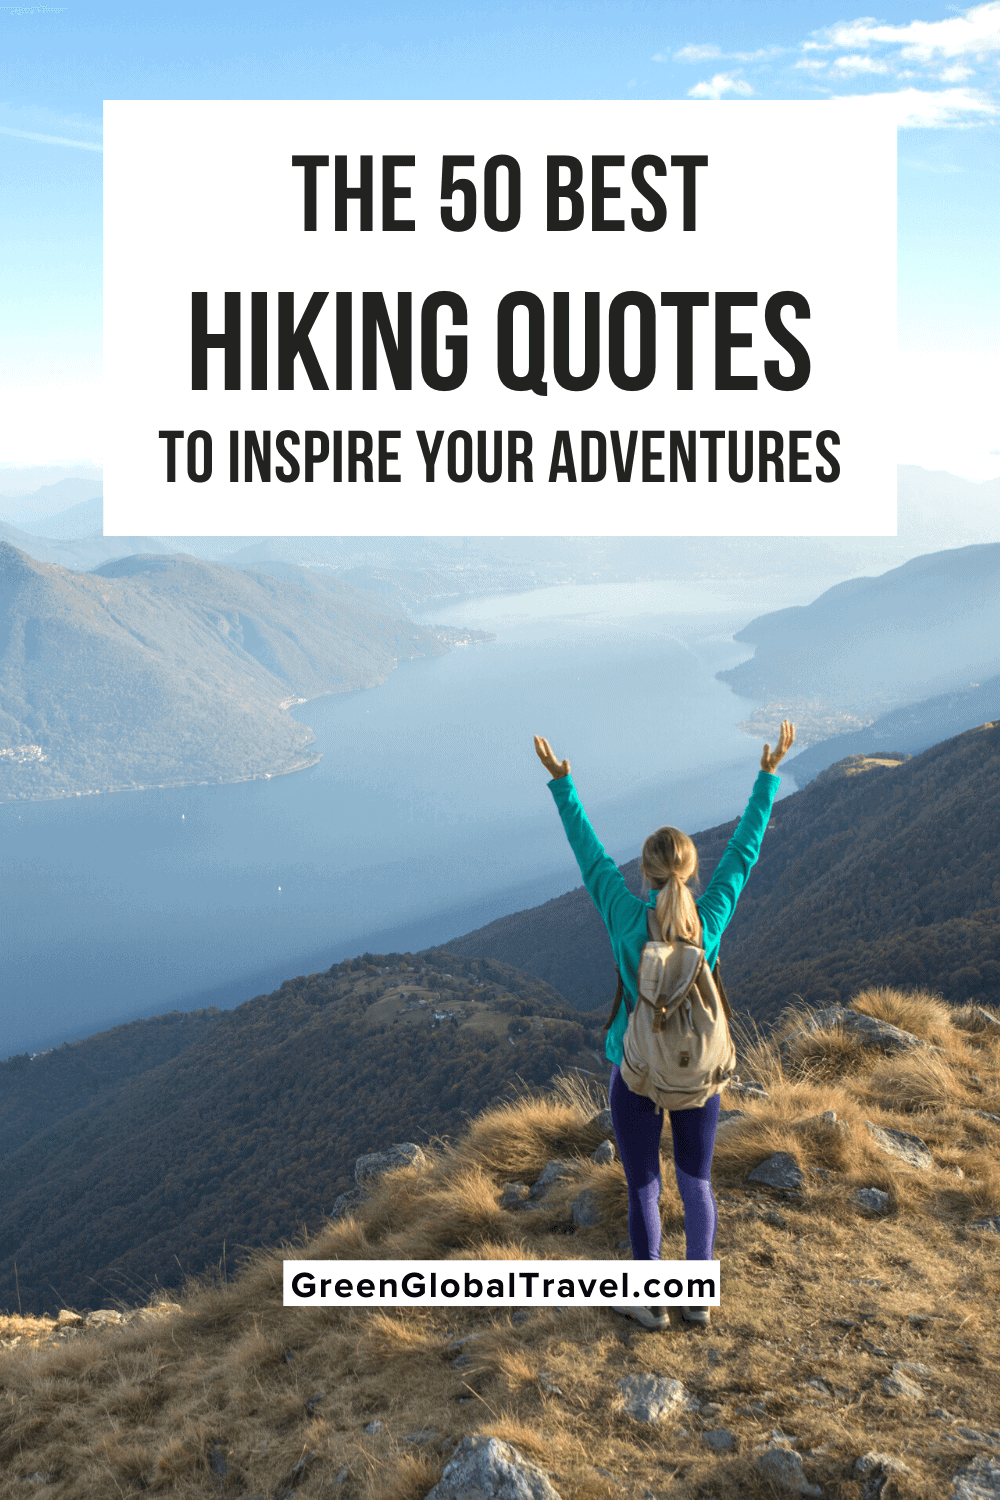 The 50 Best Hiking Quotes to Inspire Your Adventures includes funny hiking quotes, inspirational hiking quotes, and John Muir quotes on hiking. | quotes about hiking | hiking captions | hiking quotes funny | hiking funny quotes | funny quotes about hiking | hiking instagram captions | funny hiking captions | trekking captions | hiking with friends quotes | hiking quotes for instagram | caption for hiking | mountain hiking quotes | inspiring hiking quotes | quotes about hiking mountains |